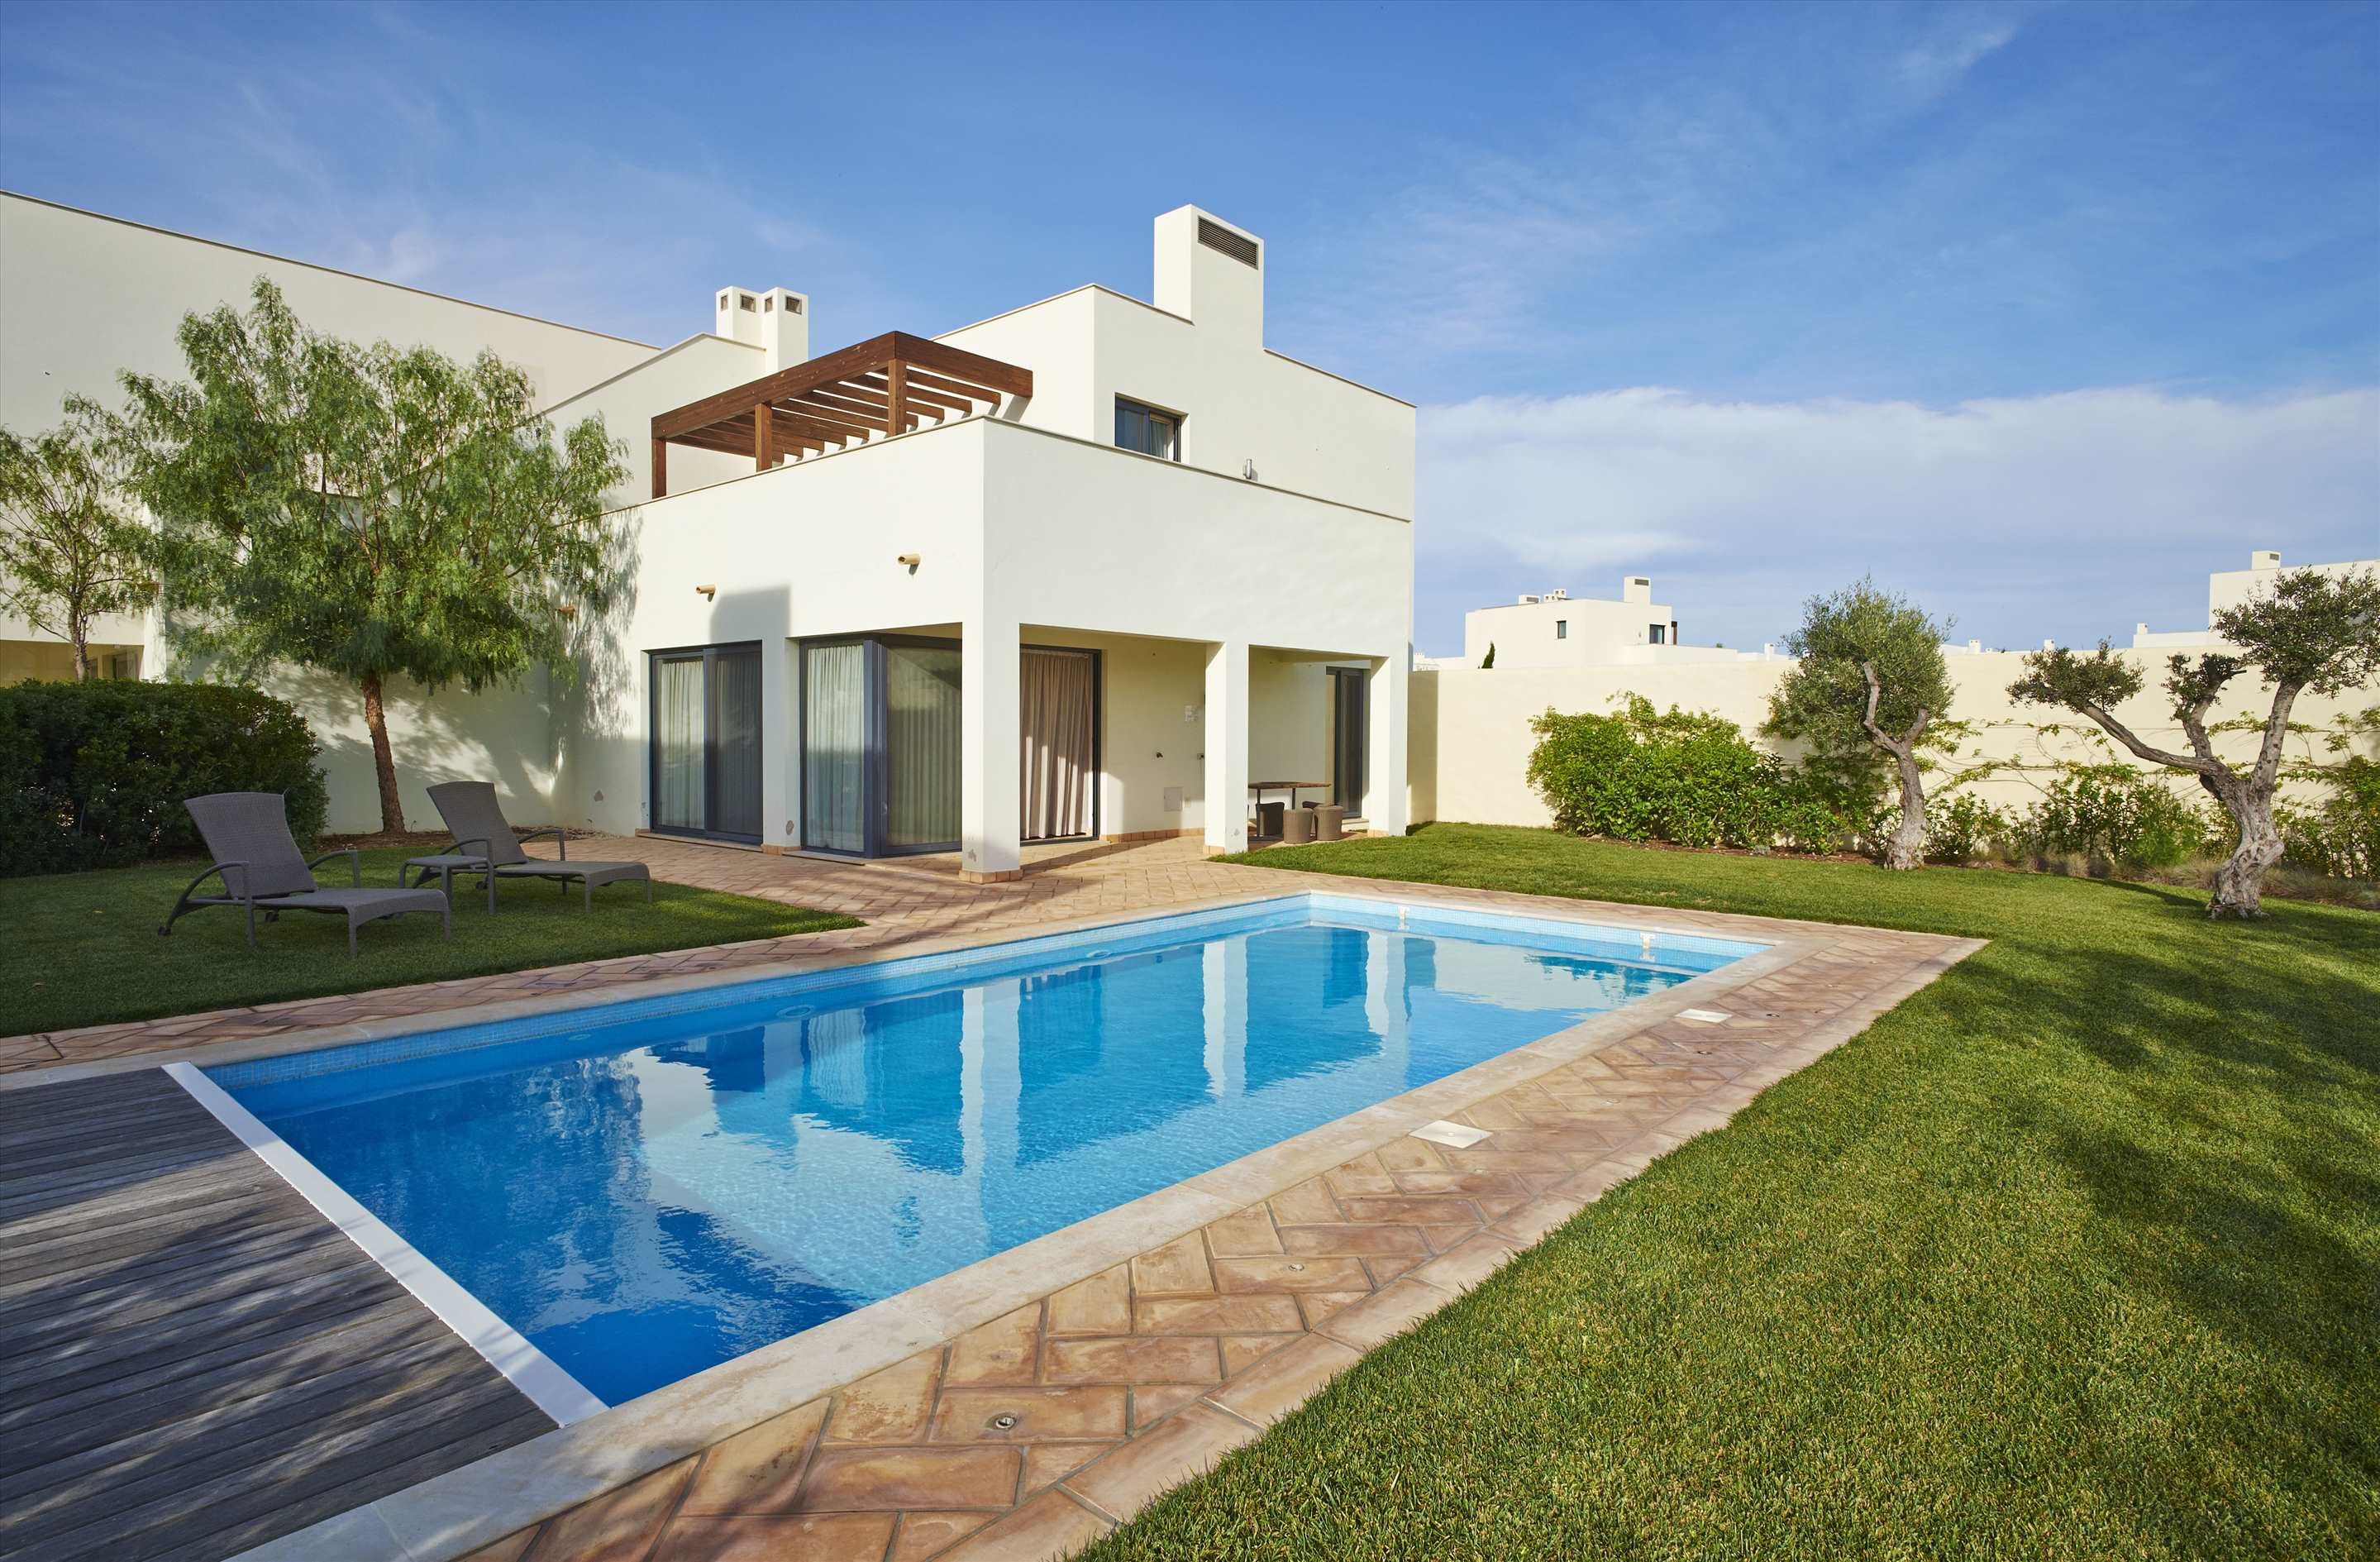 Martinhal Village Pinewood House with private pool, Master Deluxe Three Bedrooms, 3 bedroom villa in Martinhal Sagres, Algarve